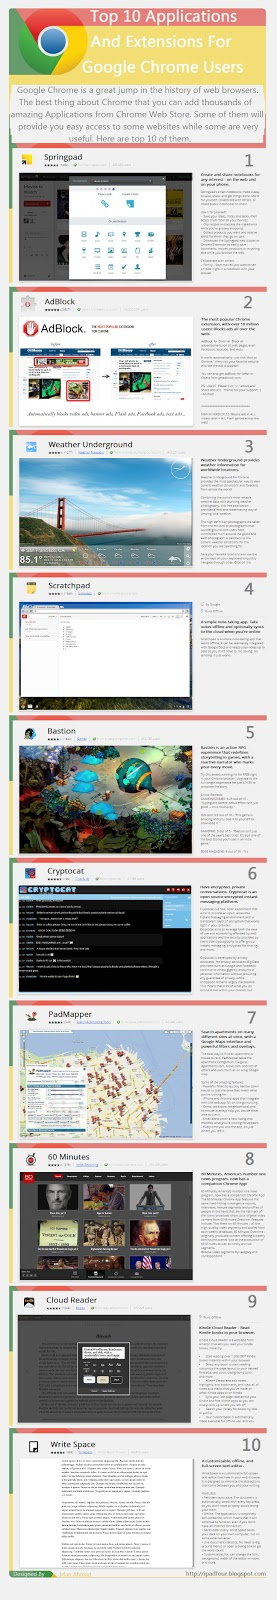 Top 10 Must Have Applications And Extensions For Google Chrome Users [infographic] : image 1